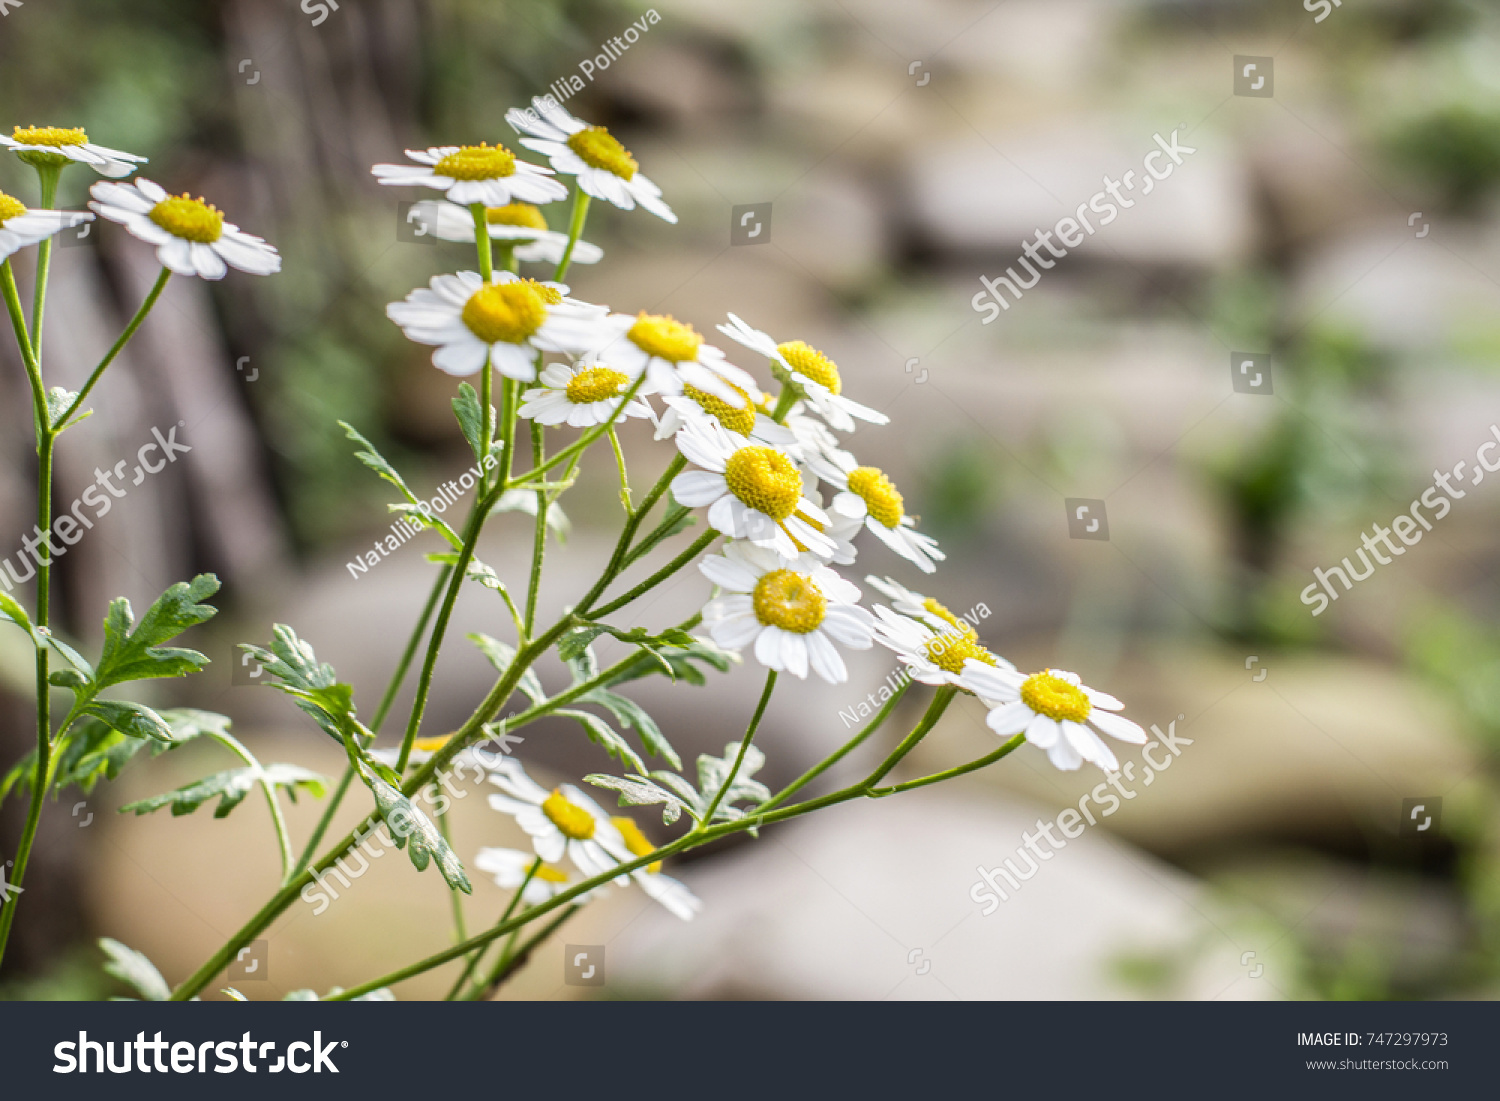 Small chamomile s common name several stock photo royalty free small chamomile s the common name for several daisy like plants of the family asteraceae izmirmasajfo